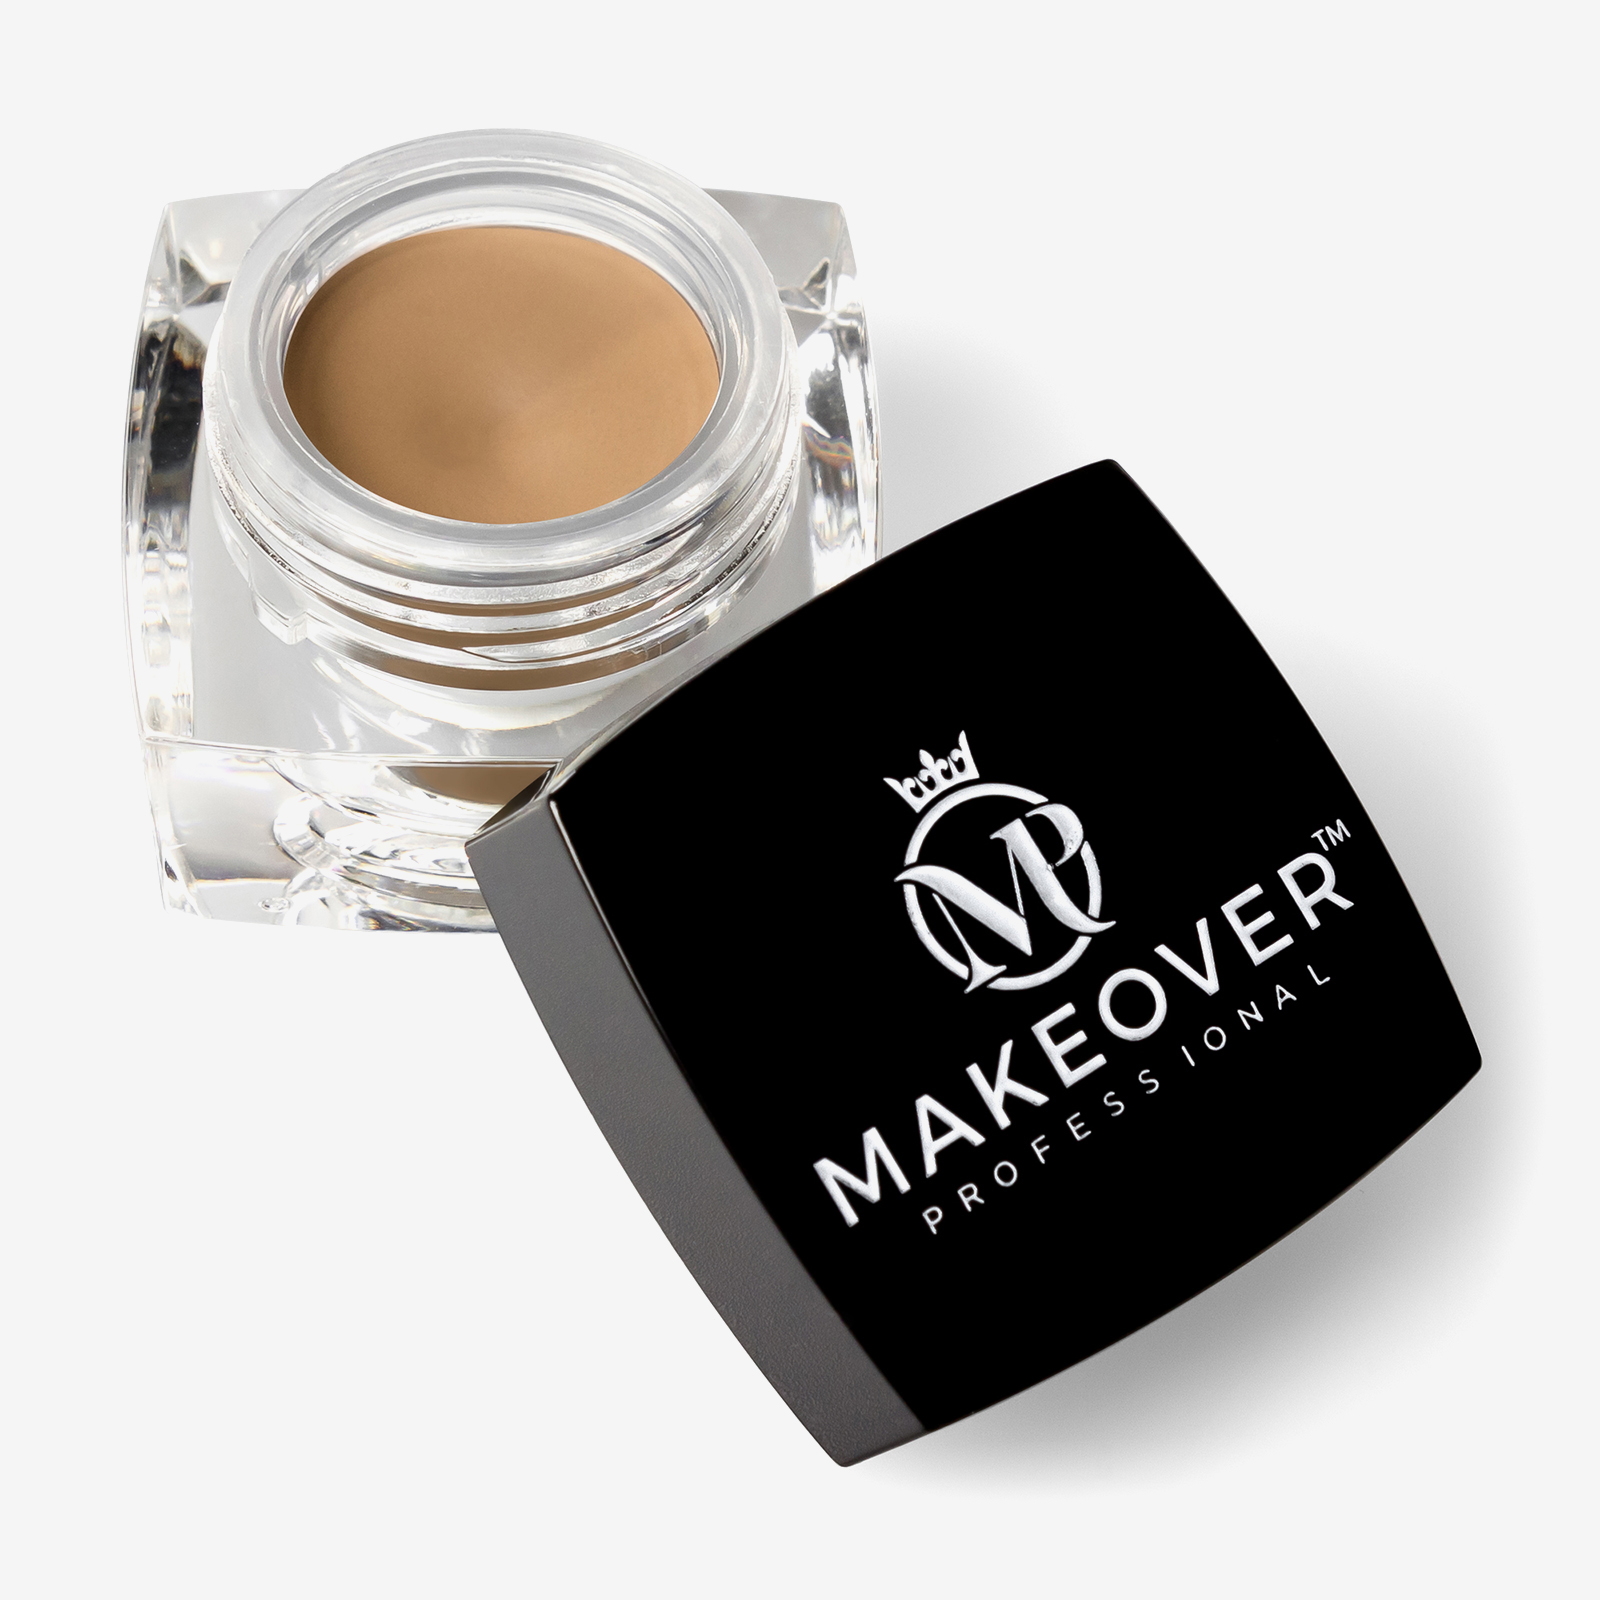 Make up product image